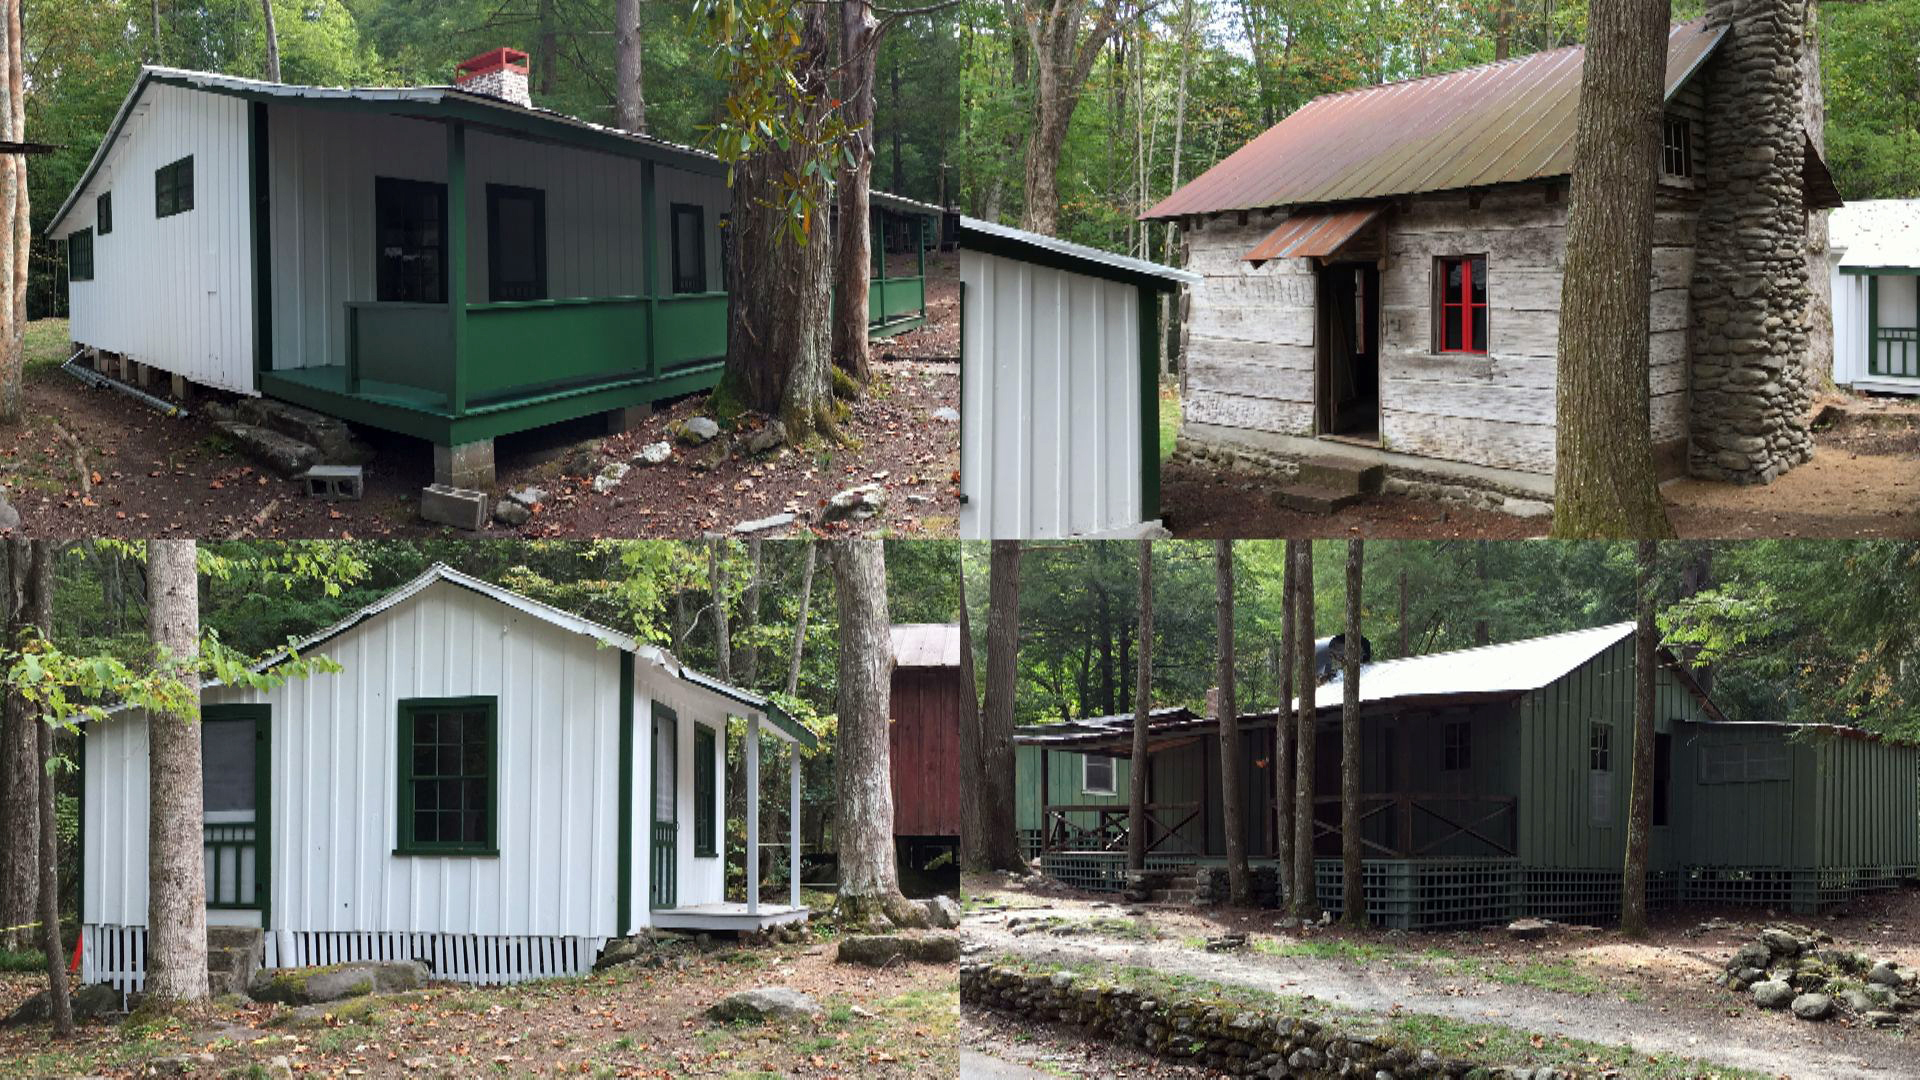 Cabins To Rent In Smoky Mountains Wbir Com Four Elkmont Cabins Restored And  Open To Visitors. 100    Cabins To Rent In Smoky Mountains     Southern Serenity 1